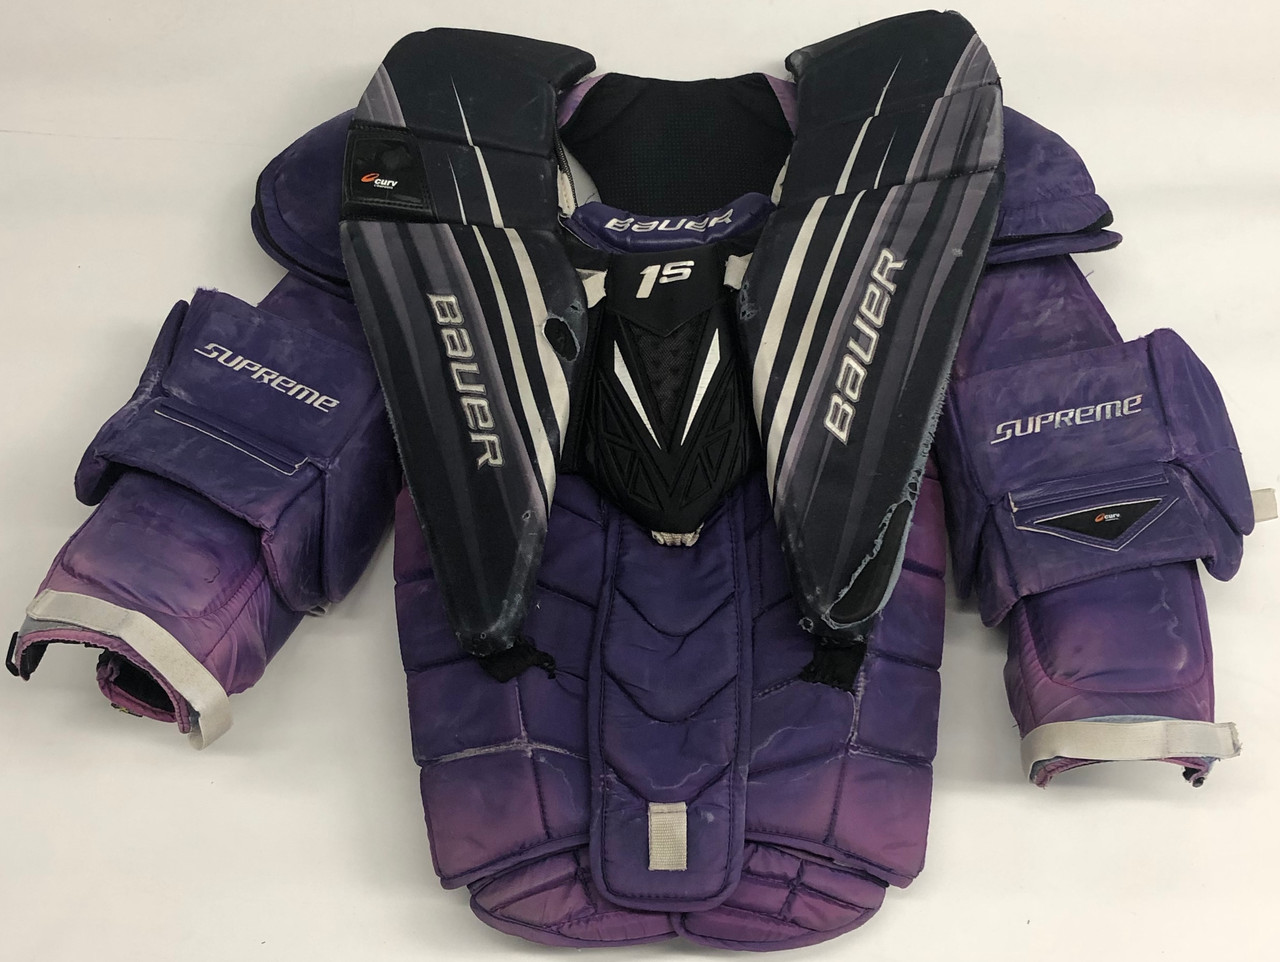 BAUER 1S XL PRO STOCK GOALIE CHEST PROTECTOR